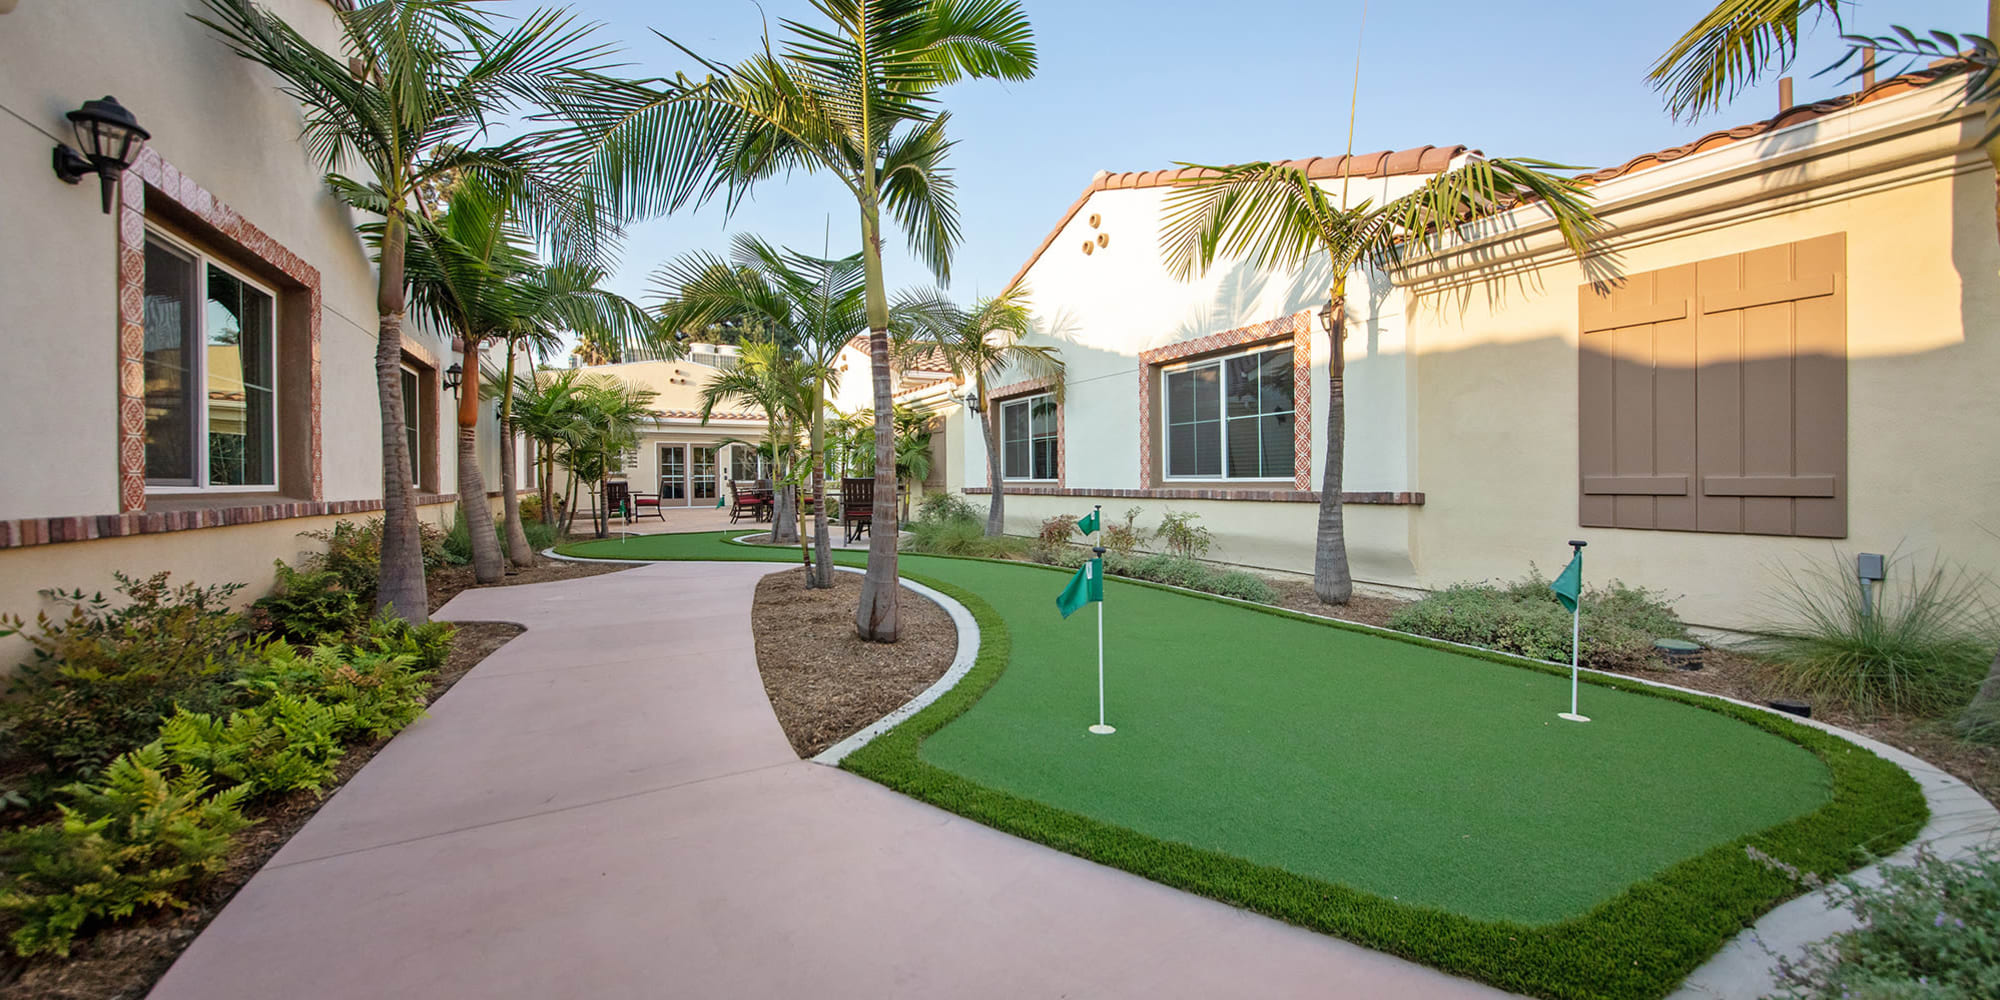 Golf and common area at Regency Palms Oxnard